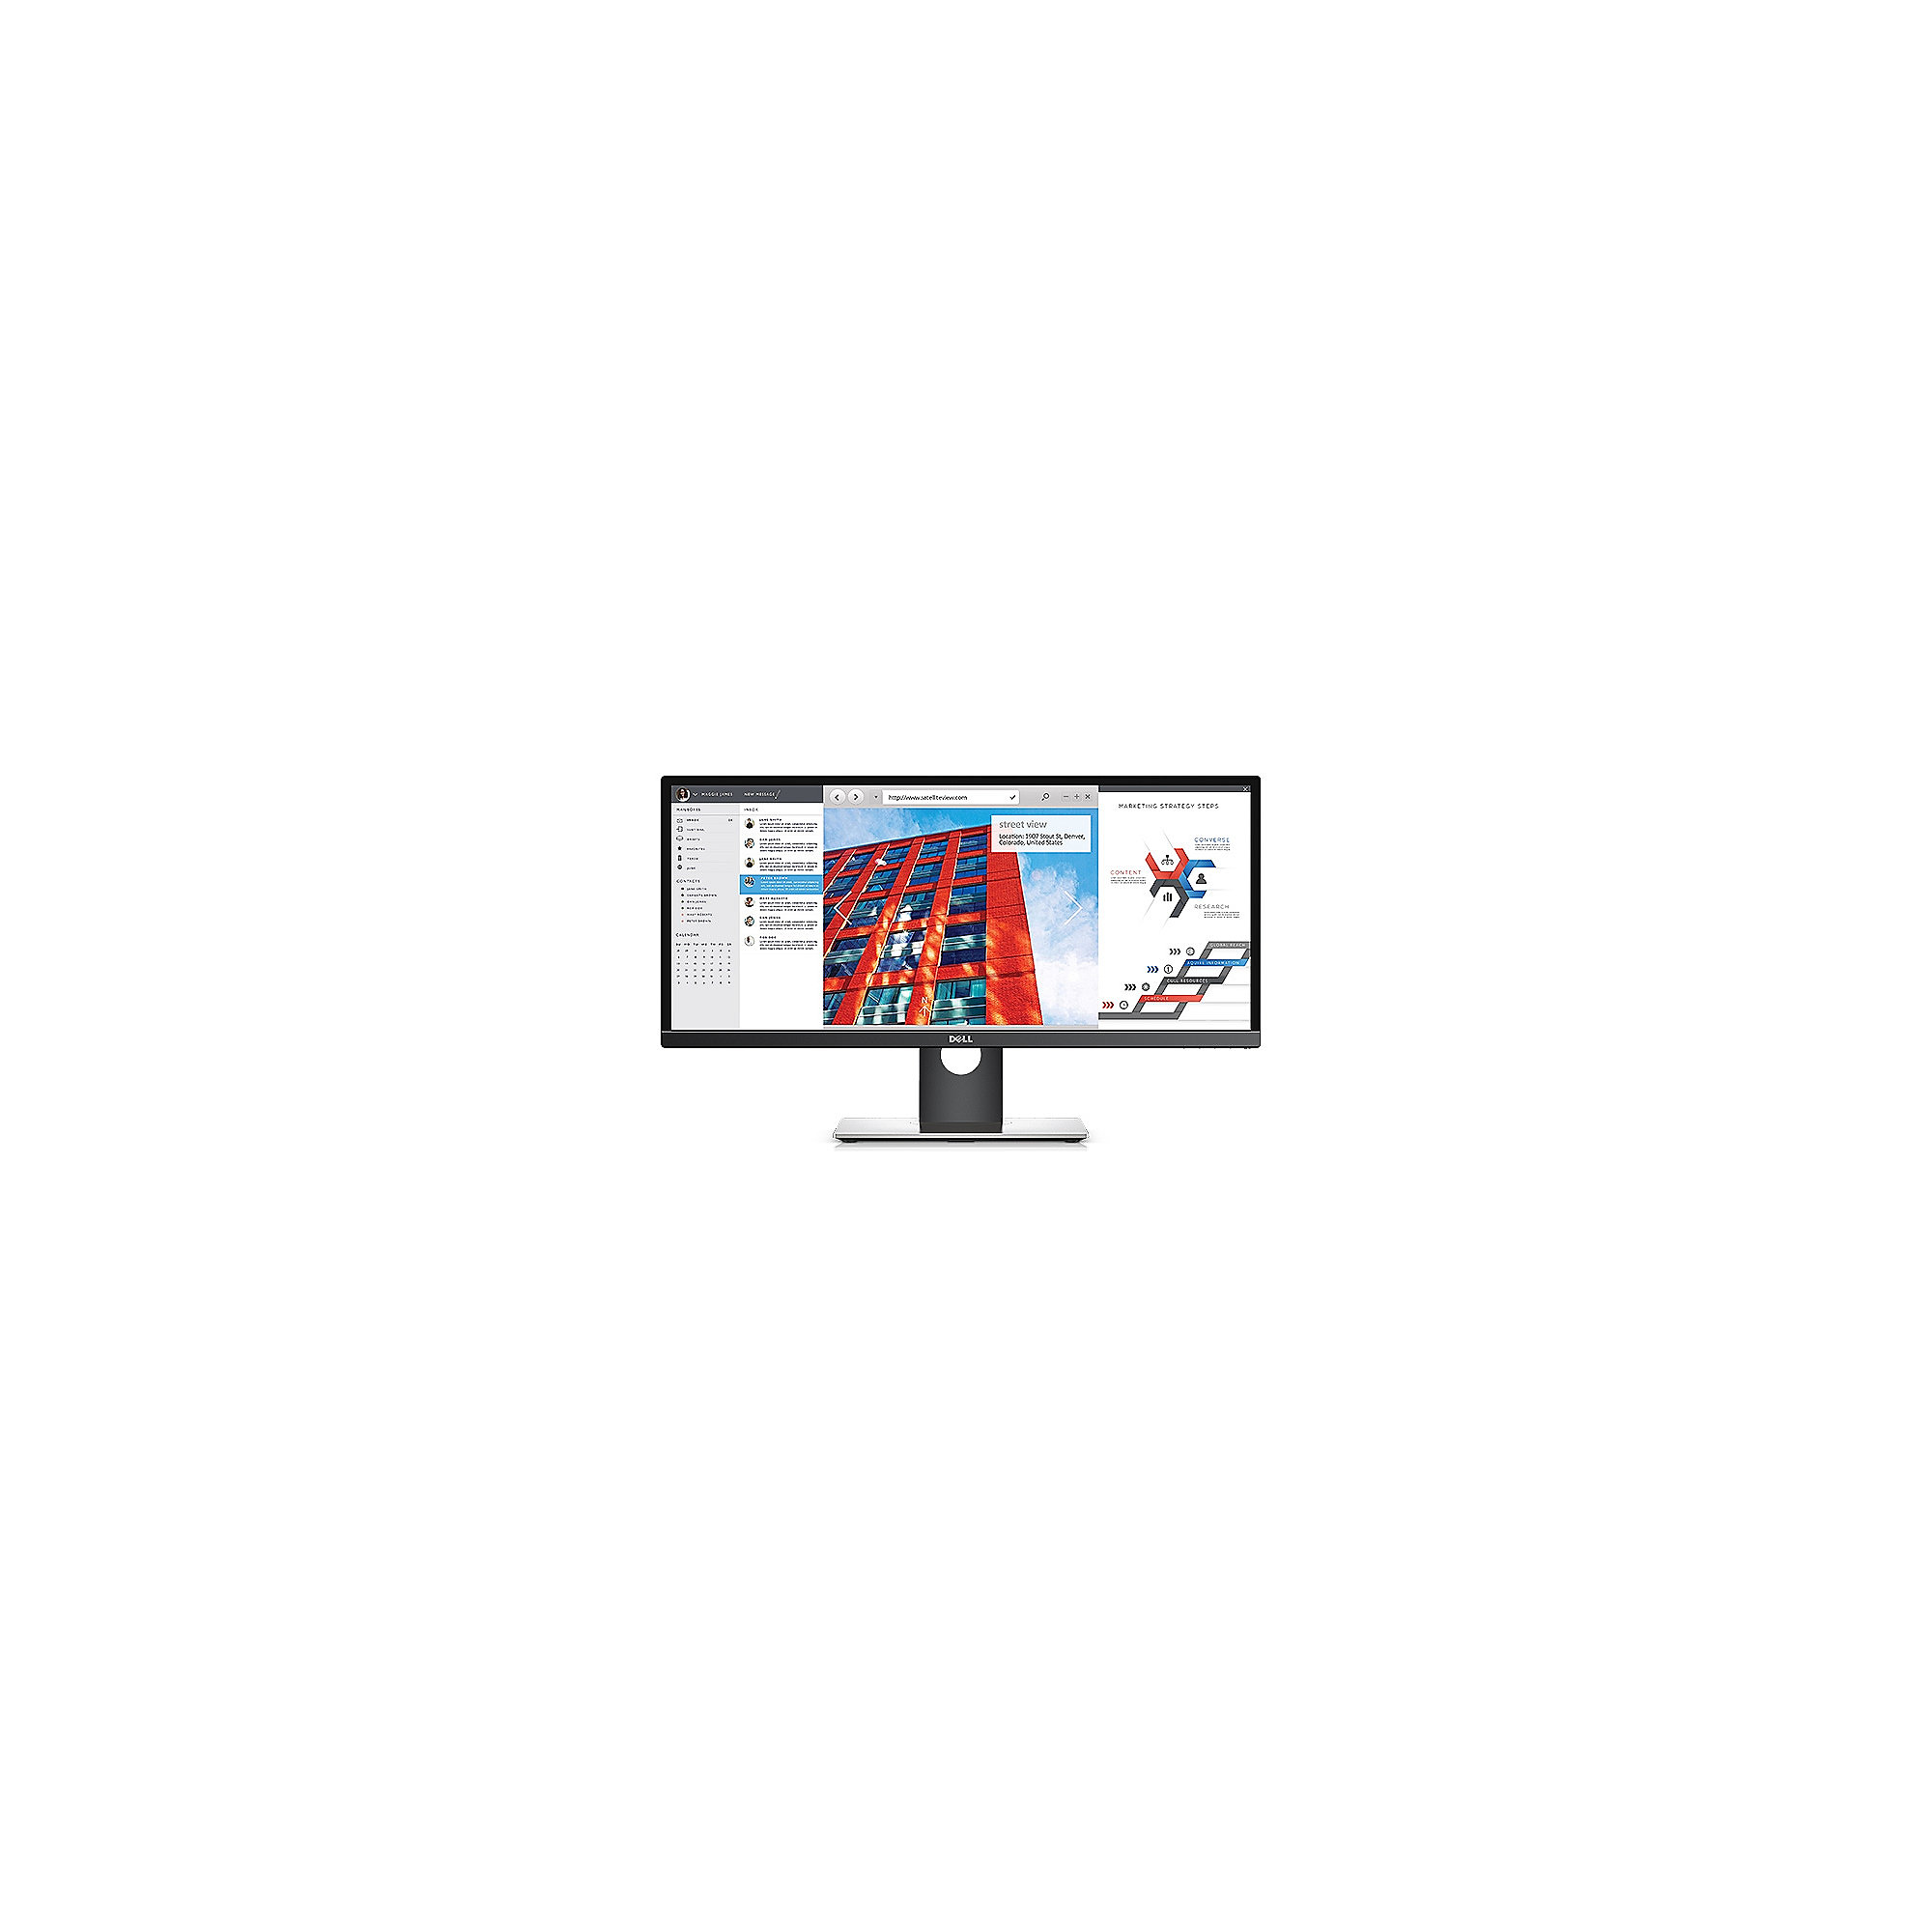 "DELL UltraSharp U2917W 73 cm (29"") 21:9 WQHD TFT IPS Monitor VGA/DP/HDMI/USB 8ms"